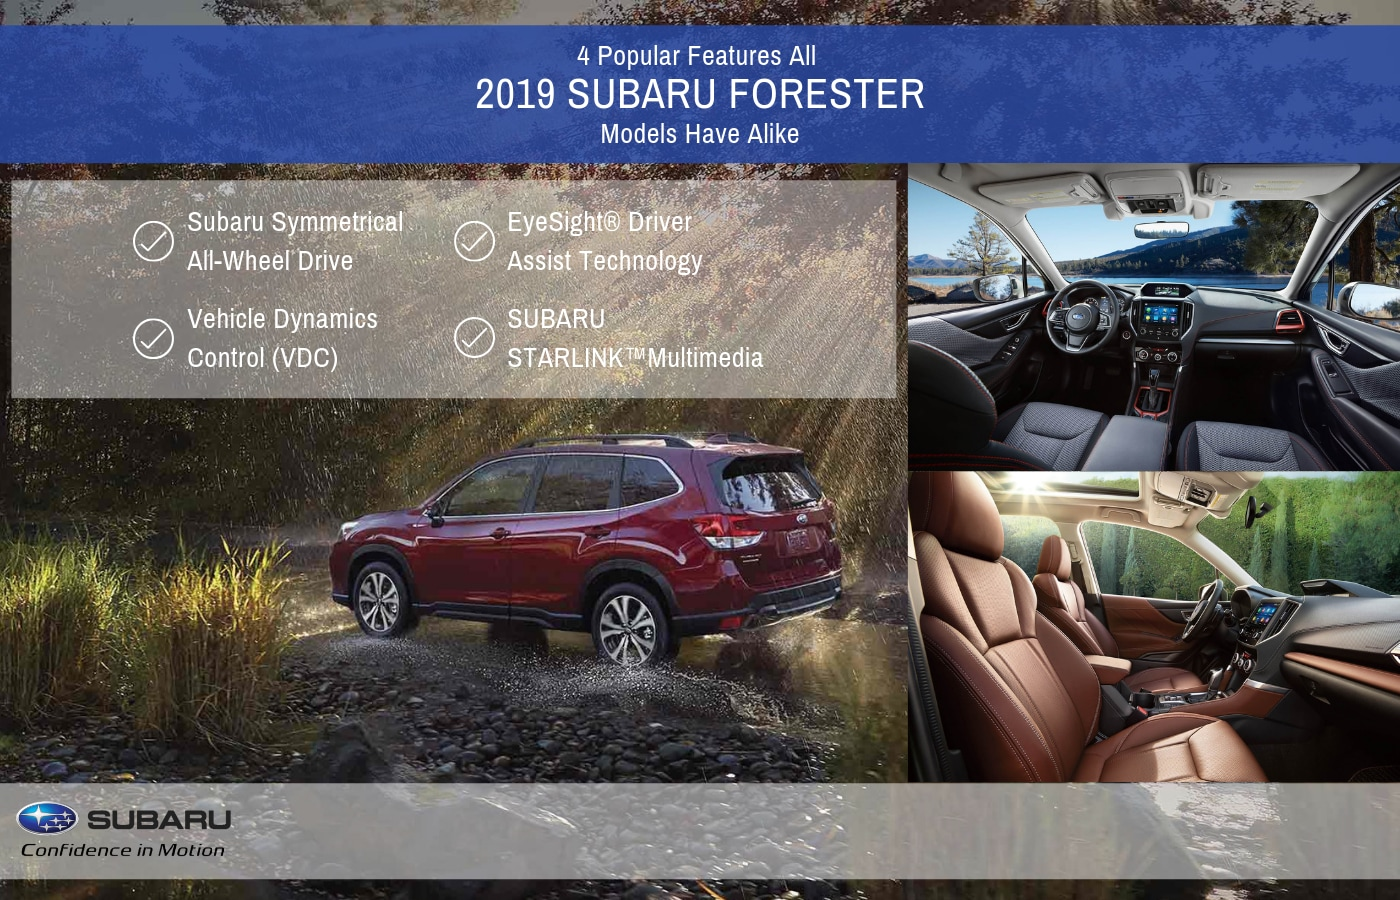 Vehicle Dynamics Control And Other Features Of 2019 Subaru